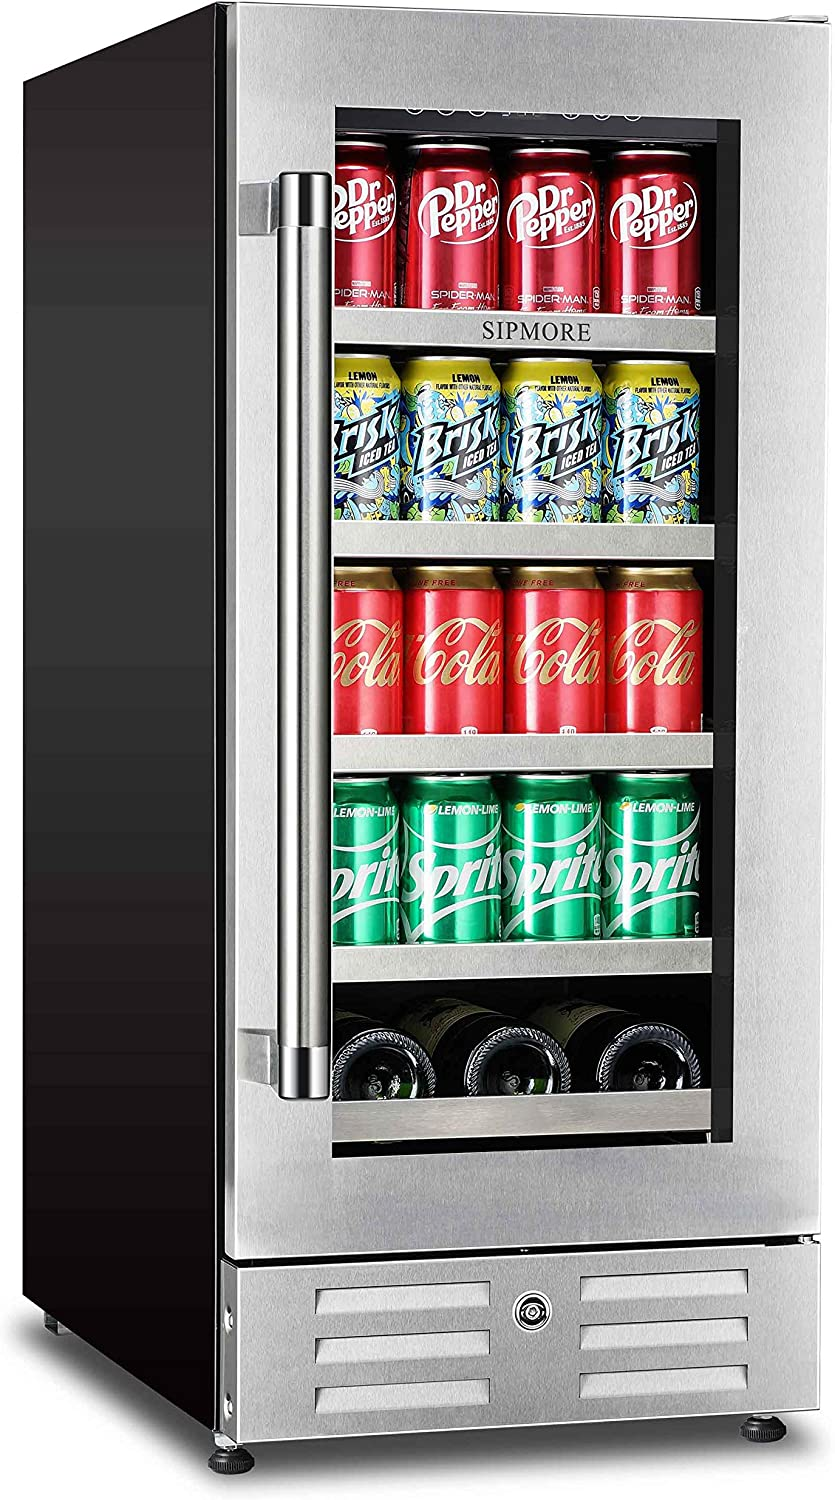 Sipmore Beverage Refrigerator and Wine Cooler 15 inch Stainless Steel Shelf 88 Can and 3 Bottle Built-in for Soda Beer, Powerful Drink Machine with Smart Control System